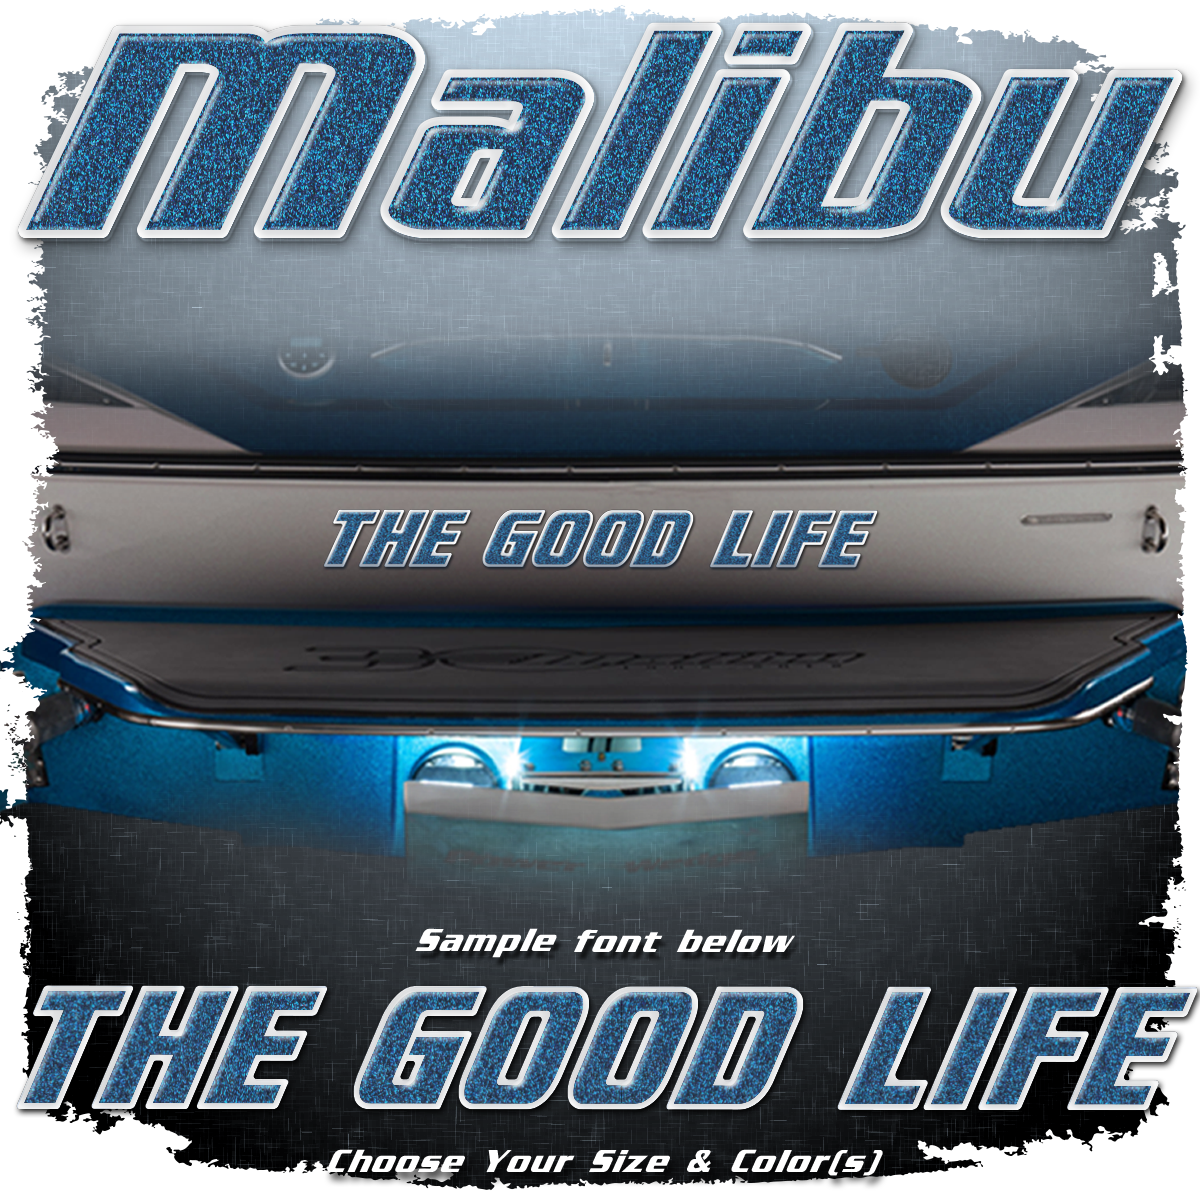 Domed Boat Name in the Malibu Font, Choose Your Own Colors